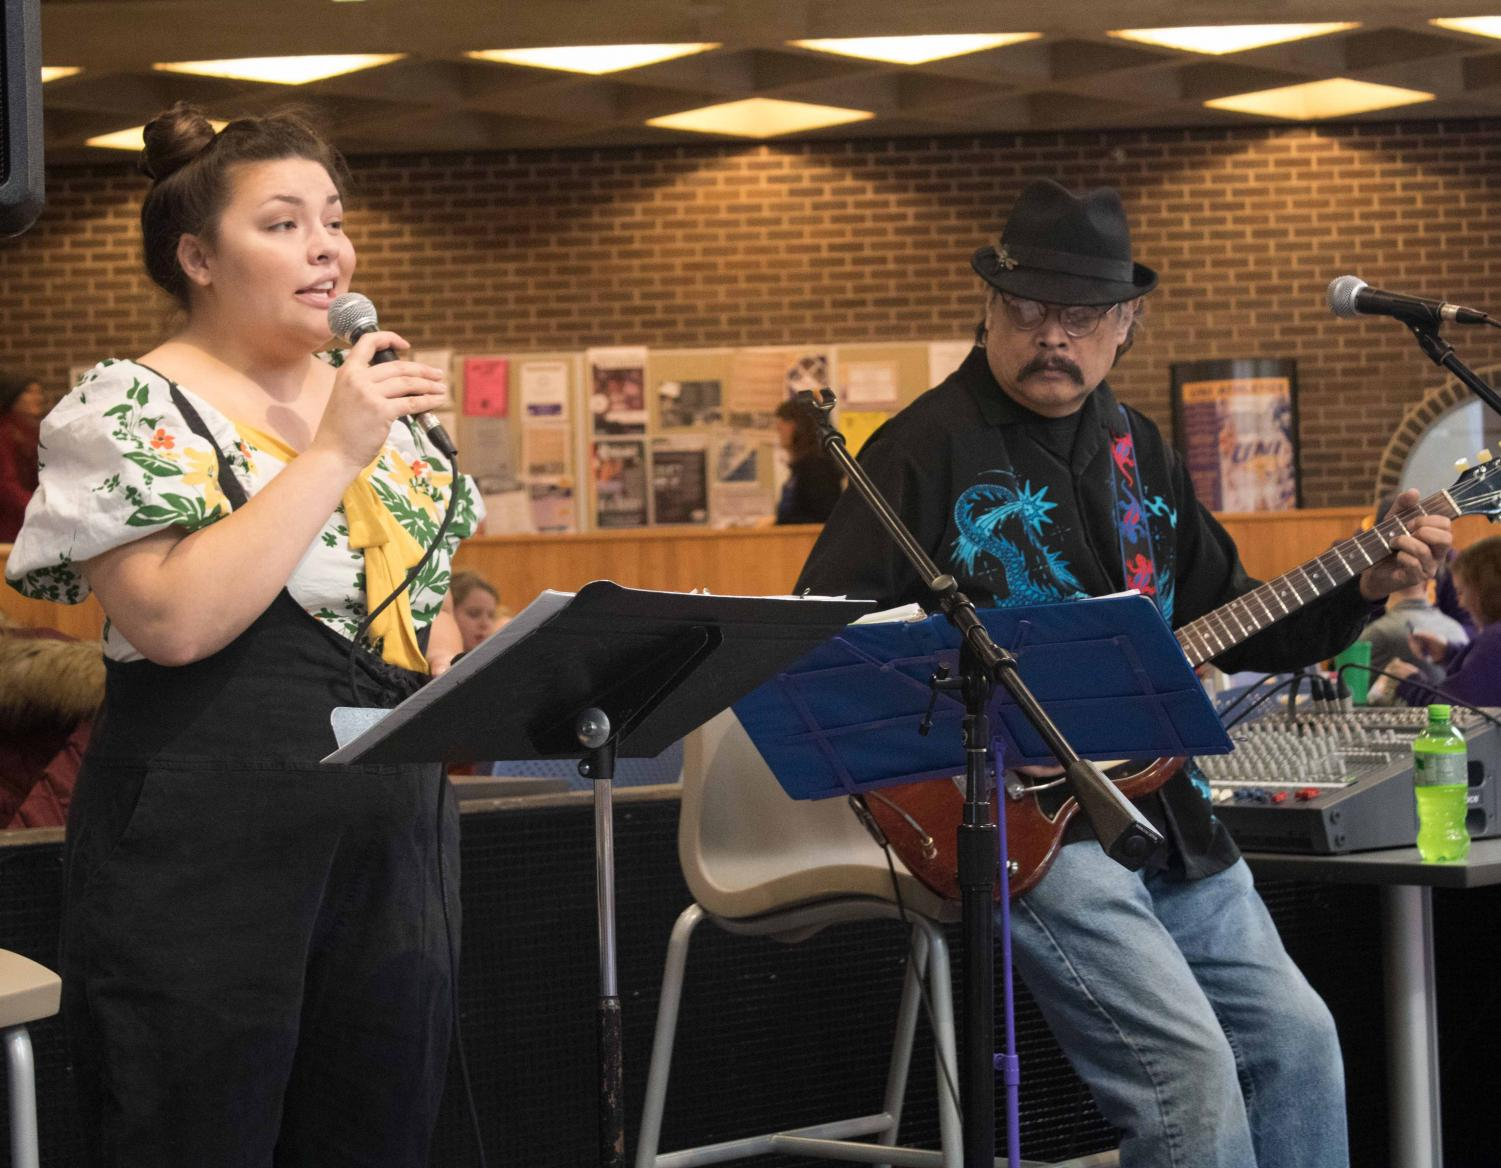 Amelia and Vince Gotera are a father-daughter duo who performed from 12 p.m. to 1 p.m. on Wednesday, Nov. 15, during Maucker Union Live.